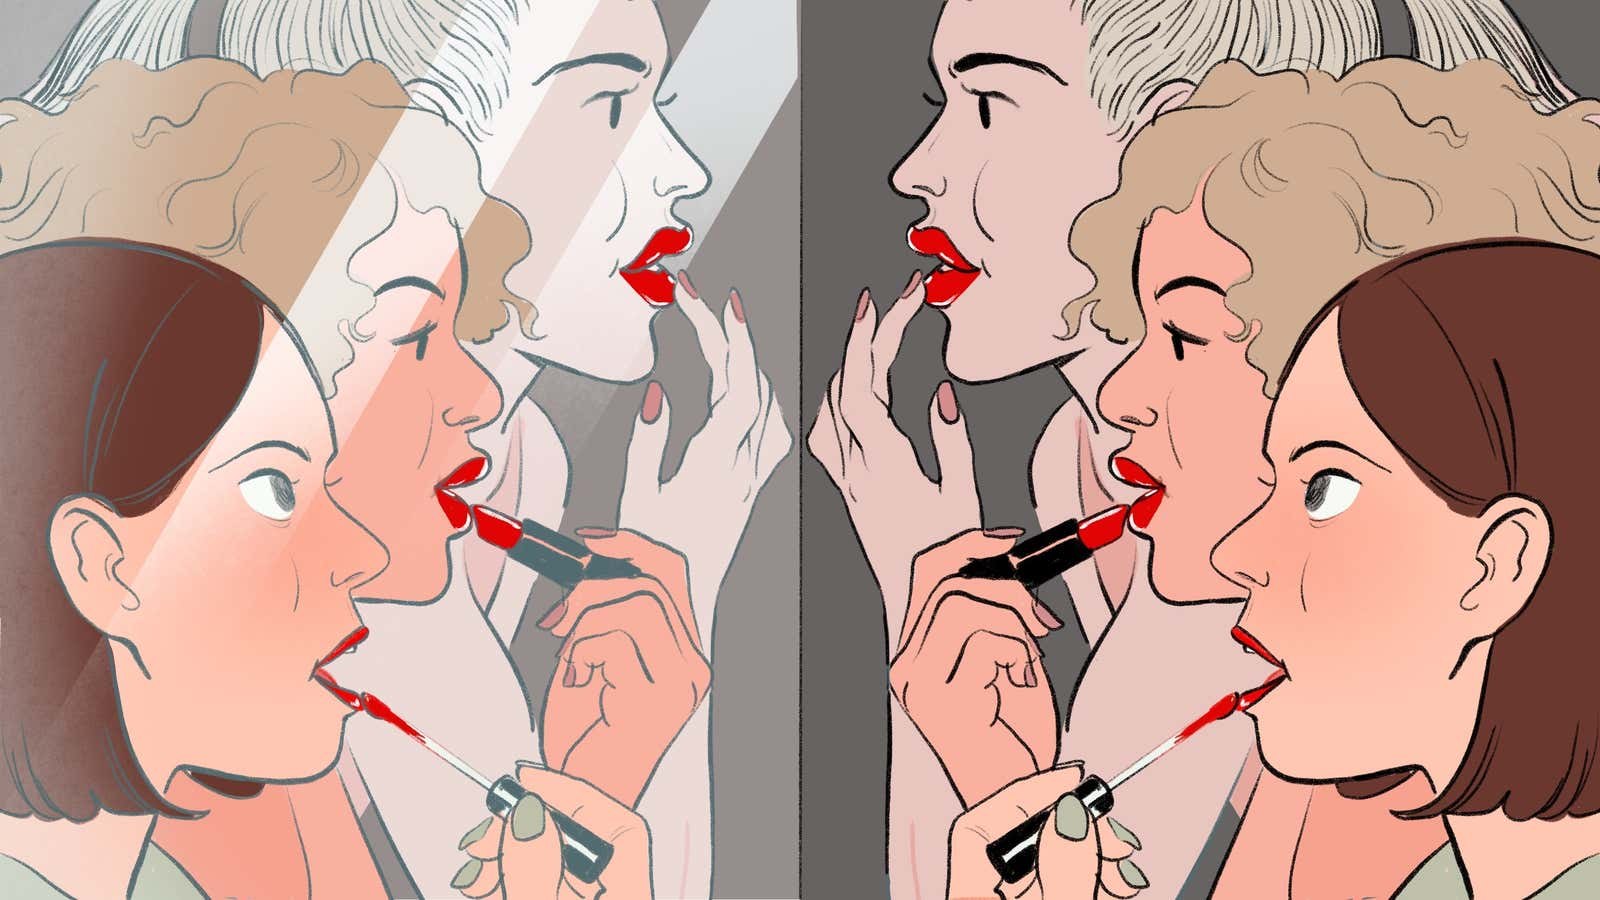 How to Have Fuller Lips Without Taking It Too Far